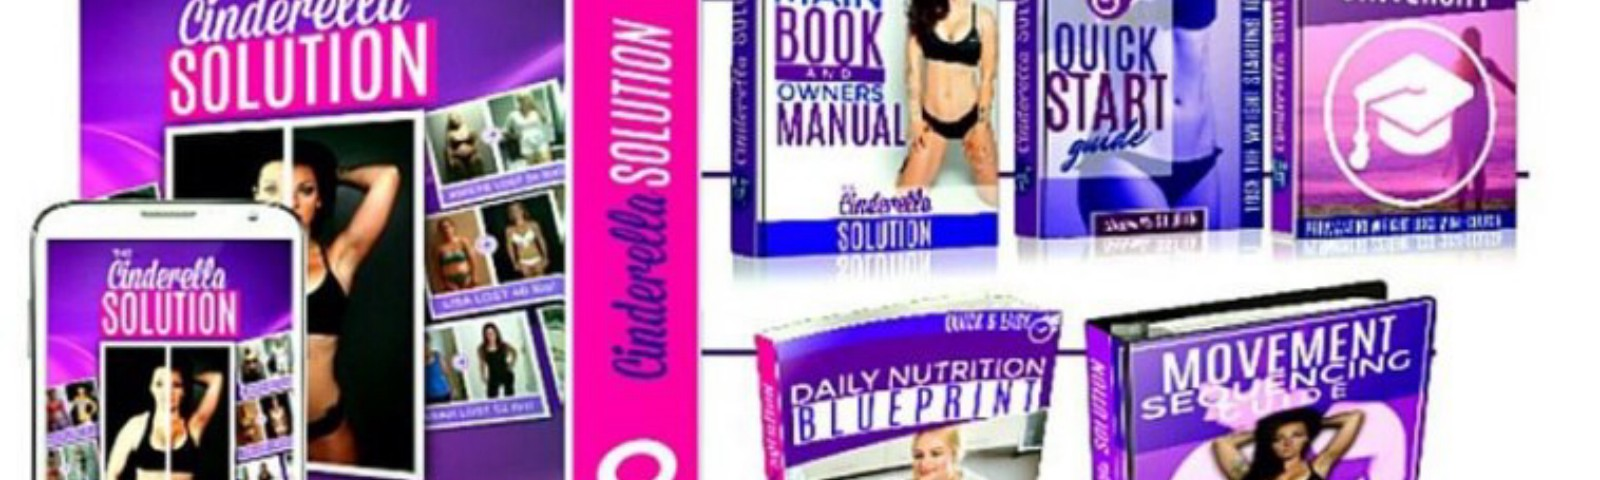 Diet Cinderella Solution Best Offers March 2020